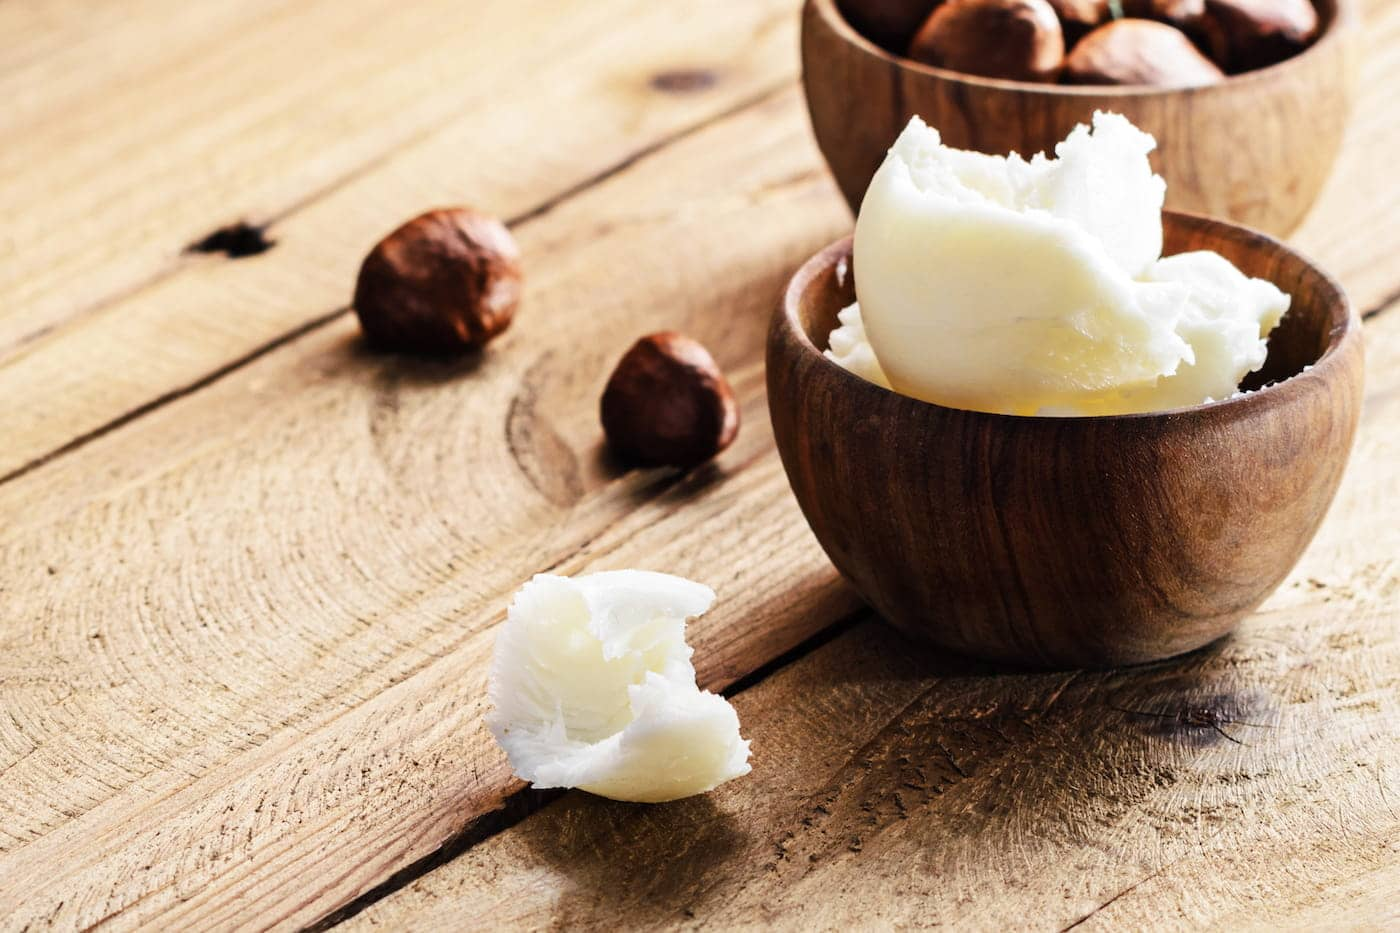 HOW IS SHEA BUTTER MADE?